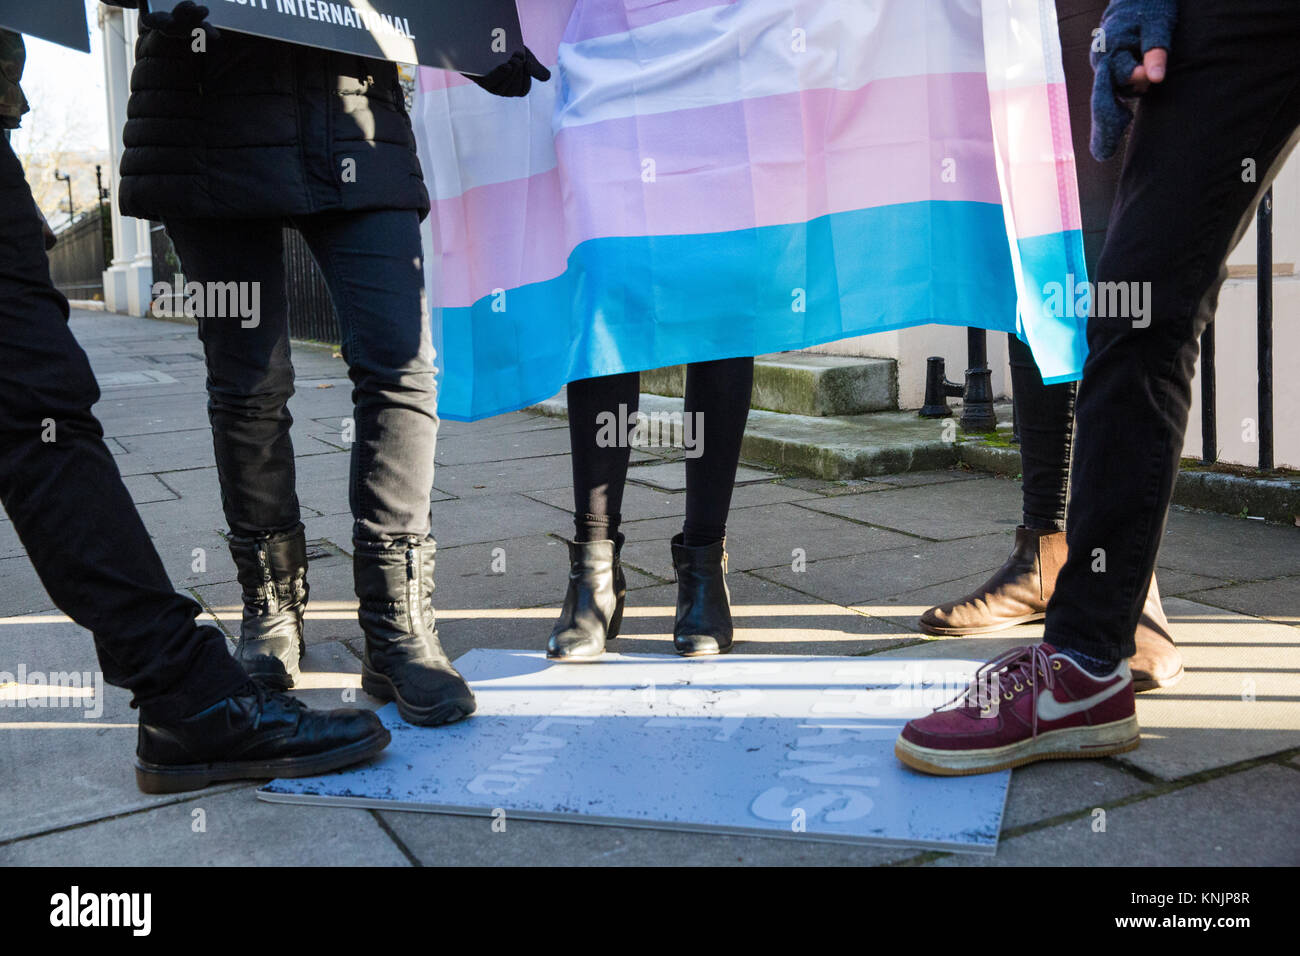 London, UK. 12th December, 2017. Amnesty International activists with a Transgender Pride flag stand on a placard Stock Photo